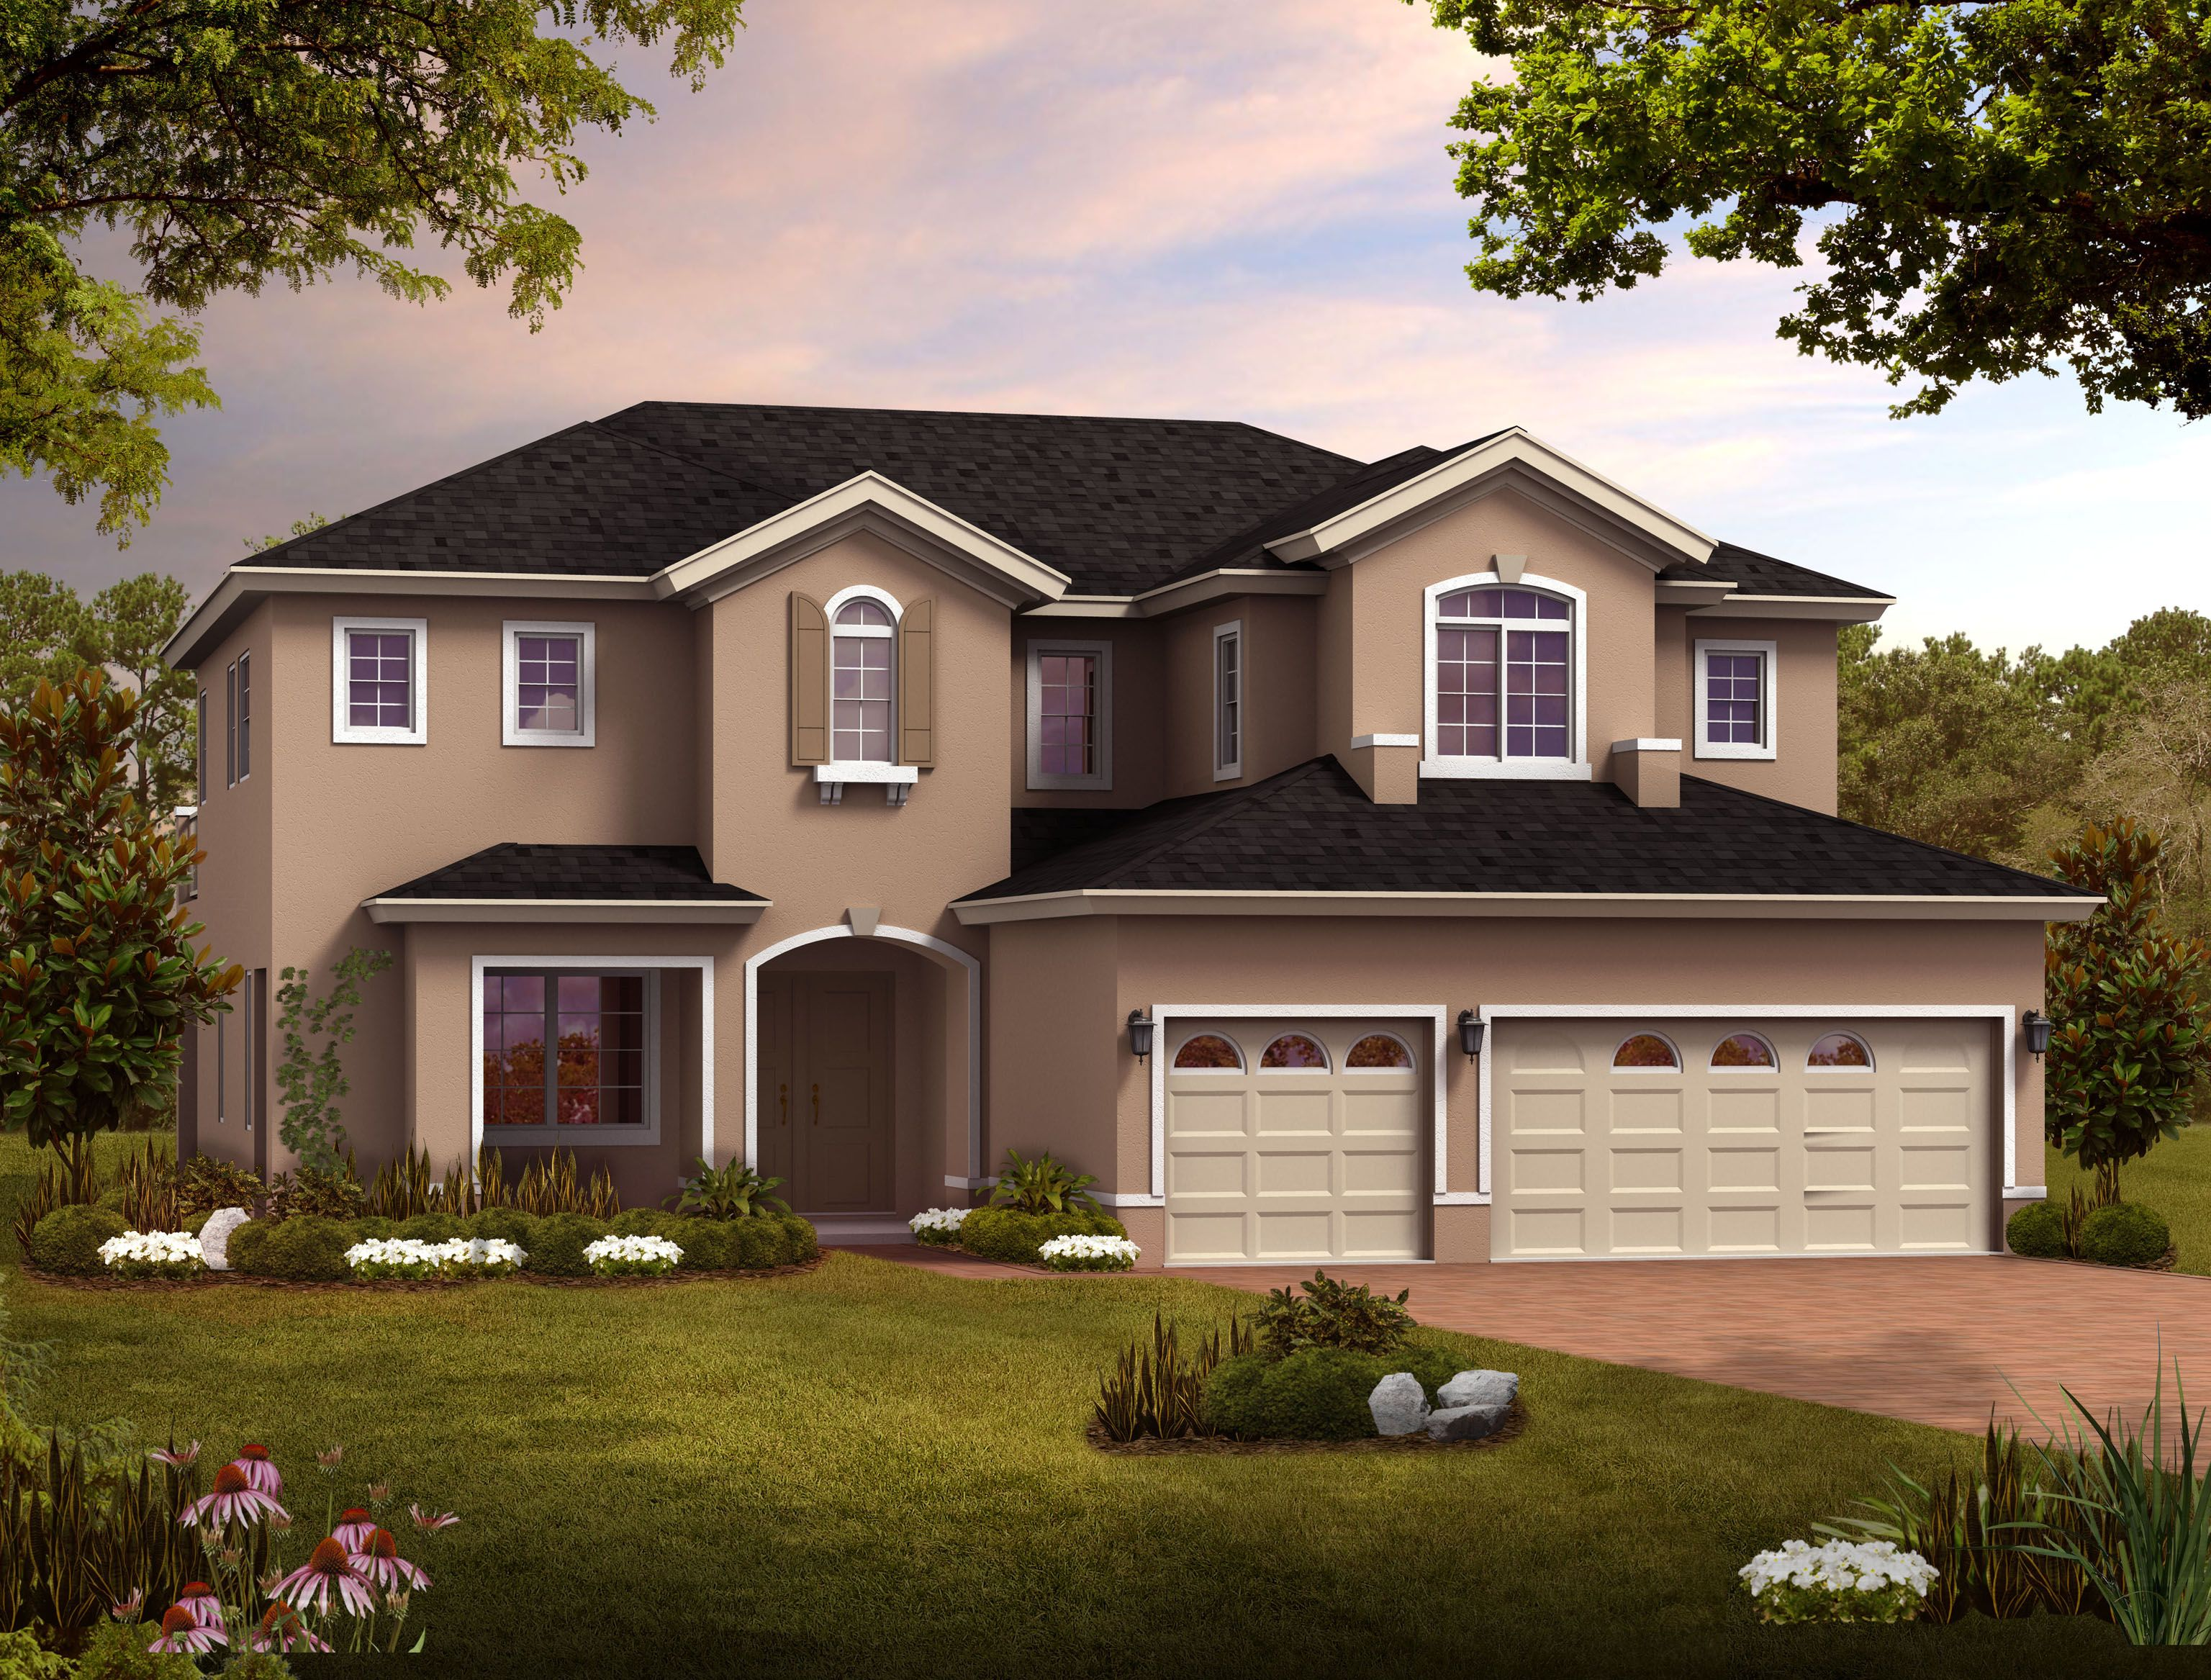 New homes for sale by standard pacific homes new home for New home sources